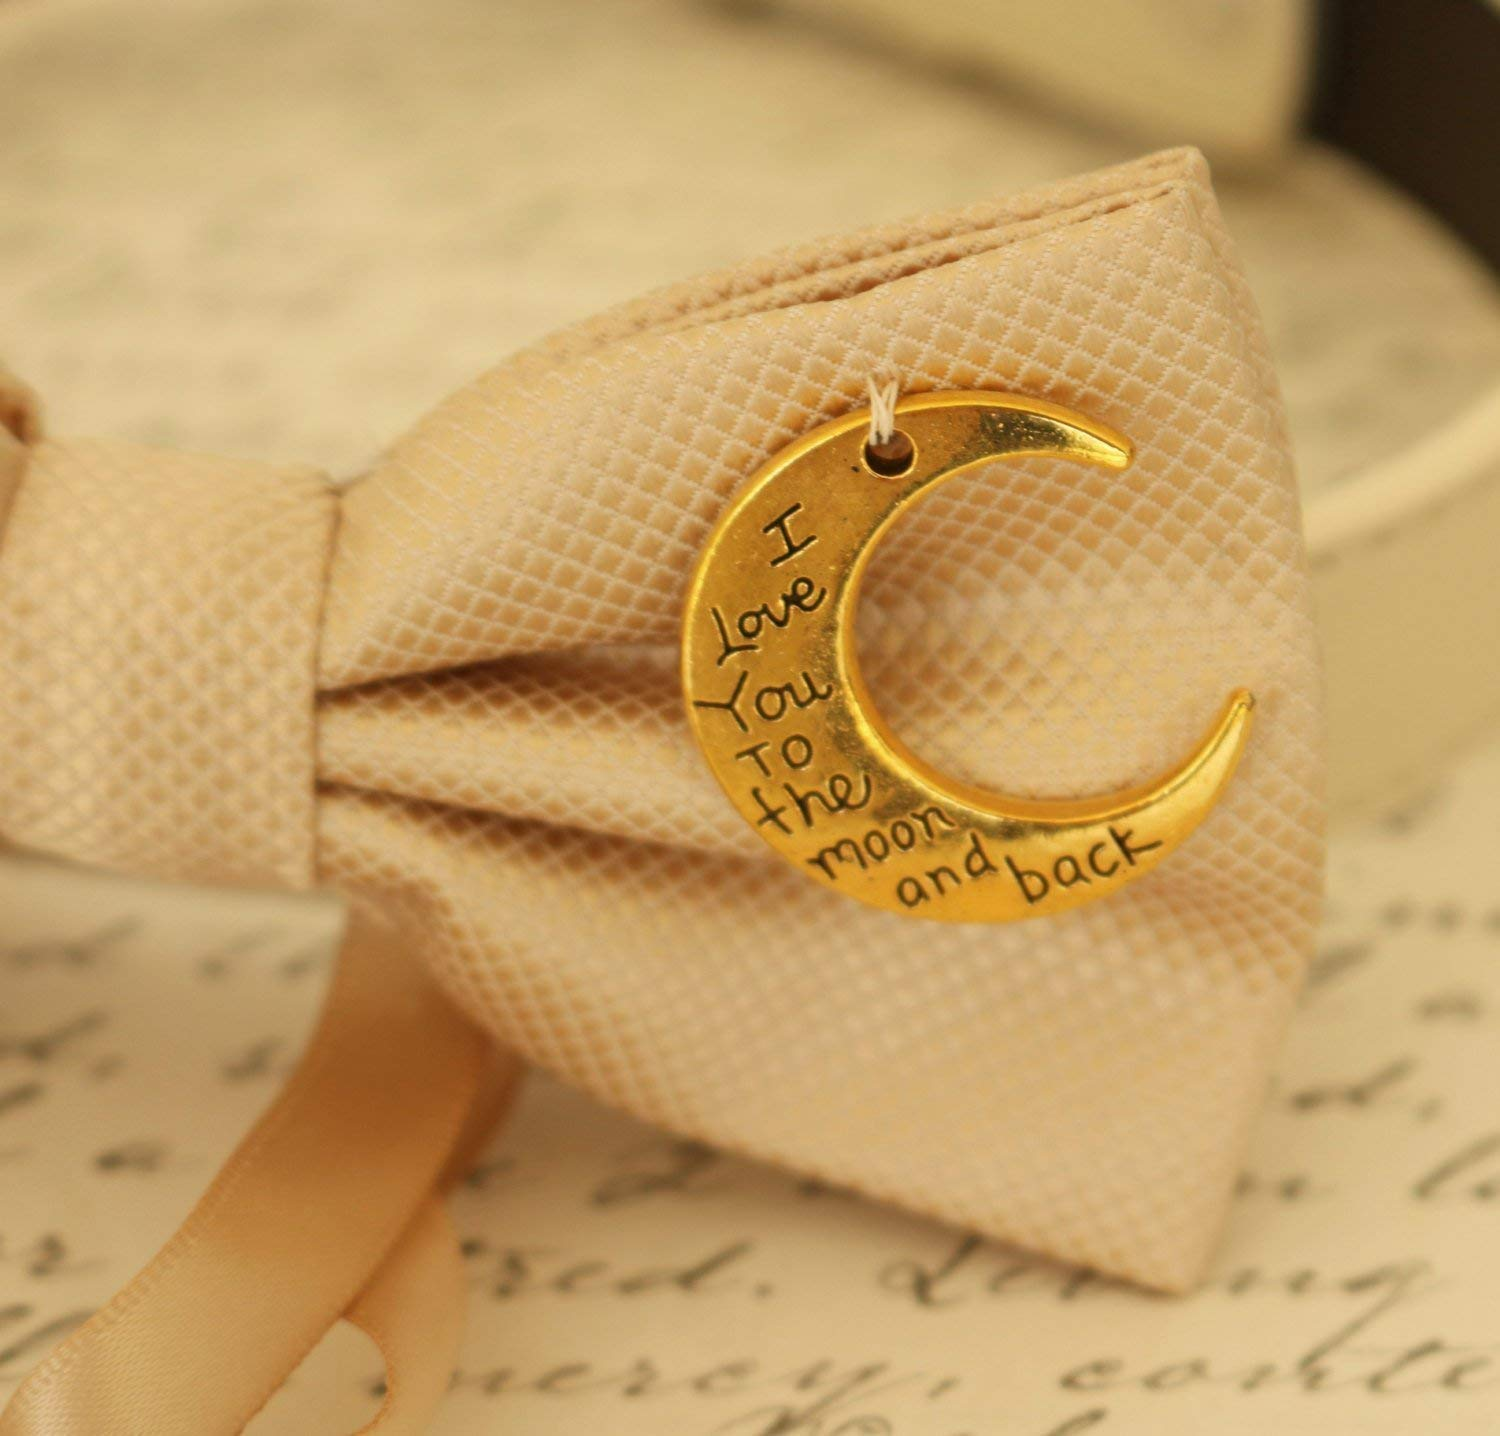 Ring Bearer Pets Wedding I love you to the moon and back Gold Charm Pet wedding Proposal Champagne Dog Bow Tie collar